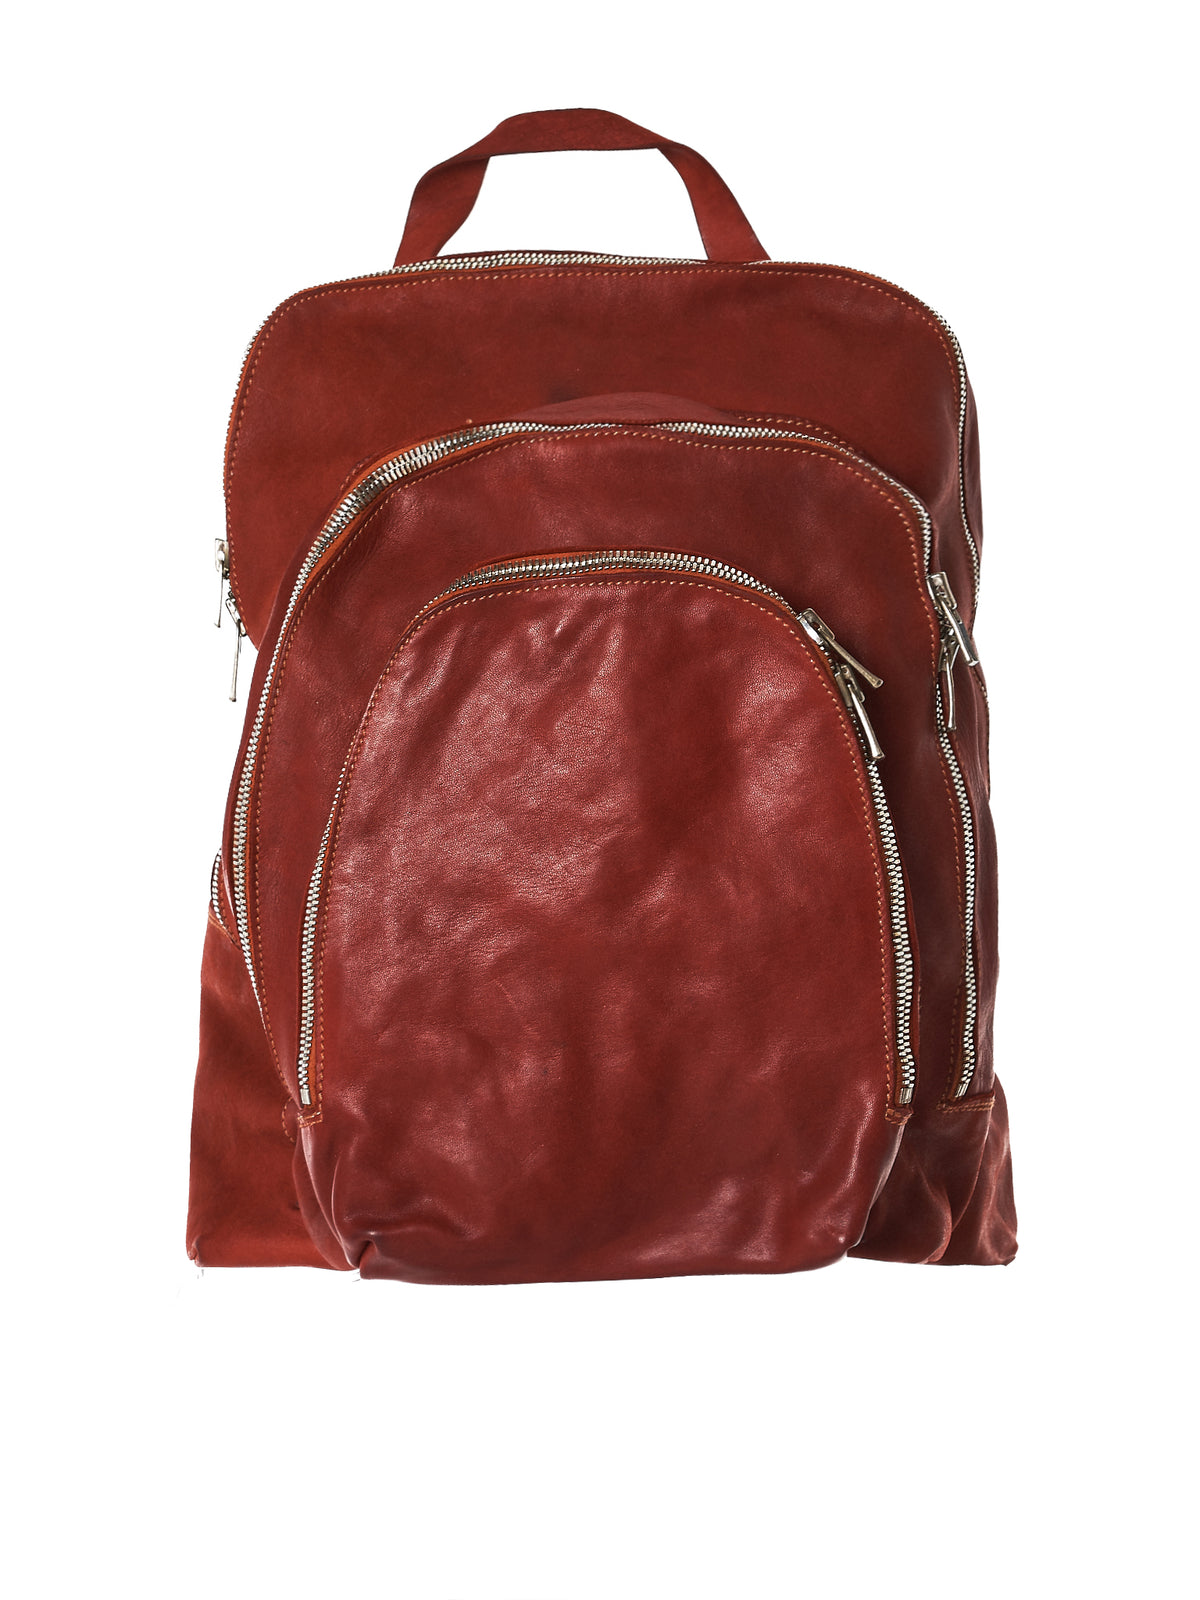 Dyed Leather Backpack (DBP04-SOFT-HORSE-FG-1006T)